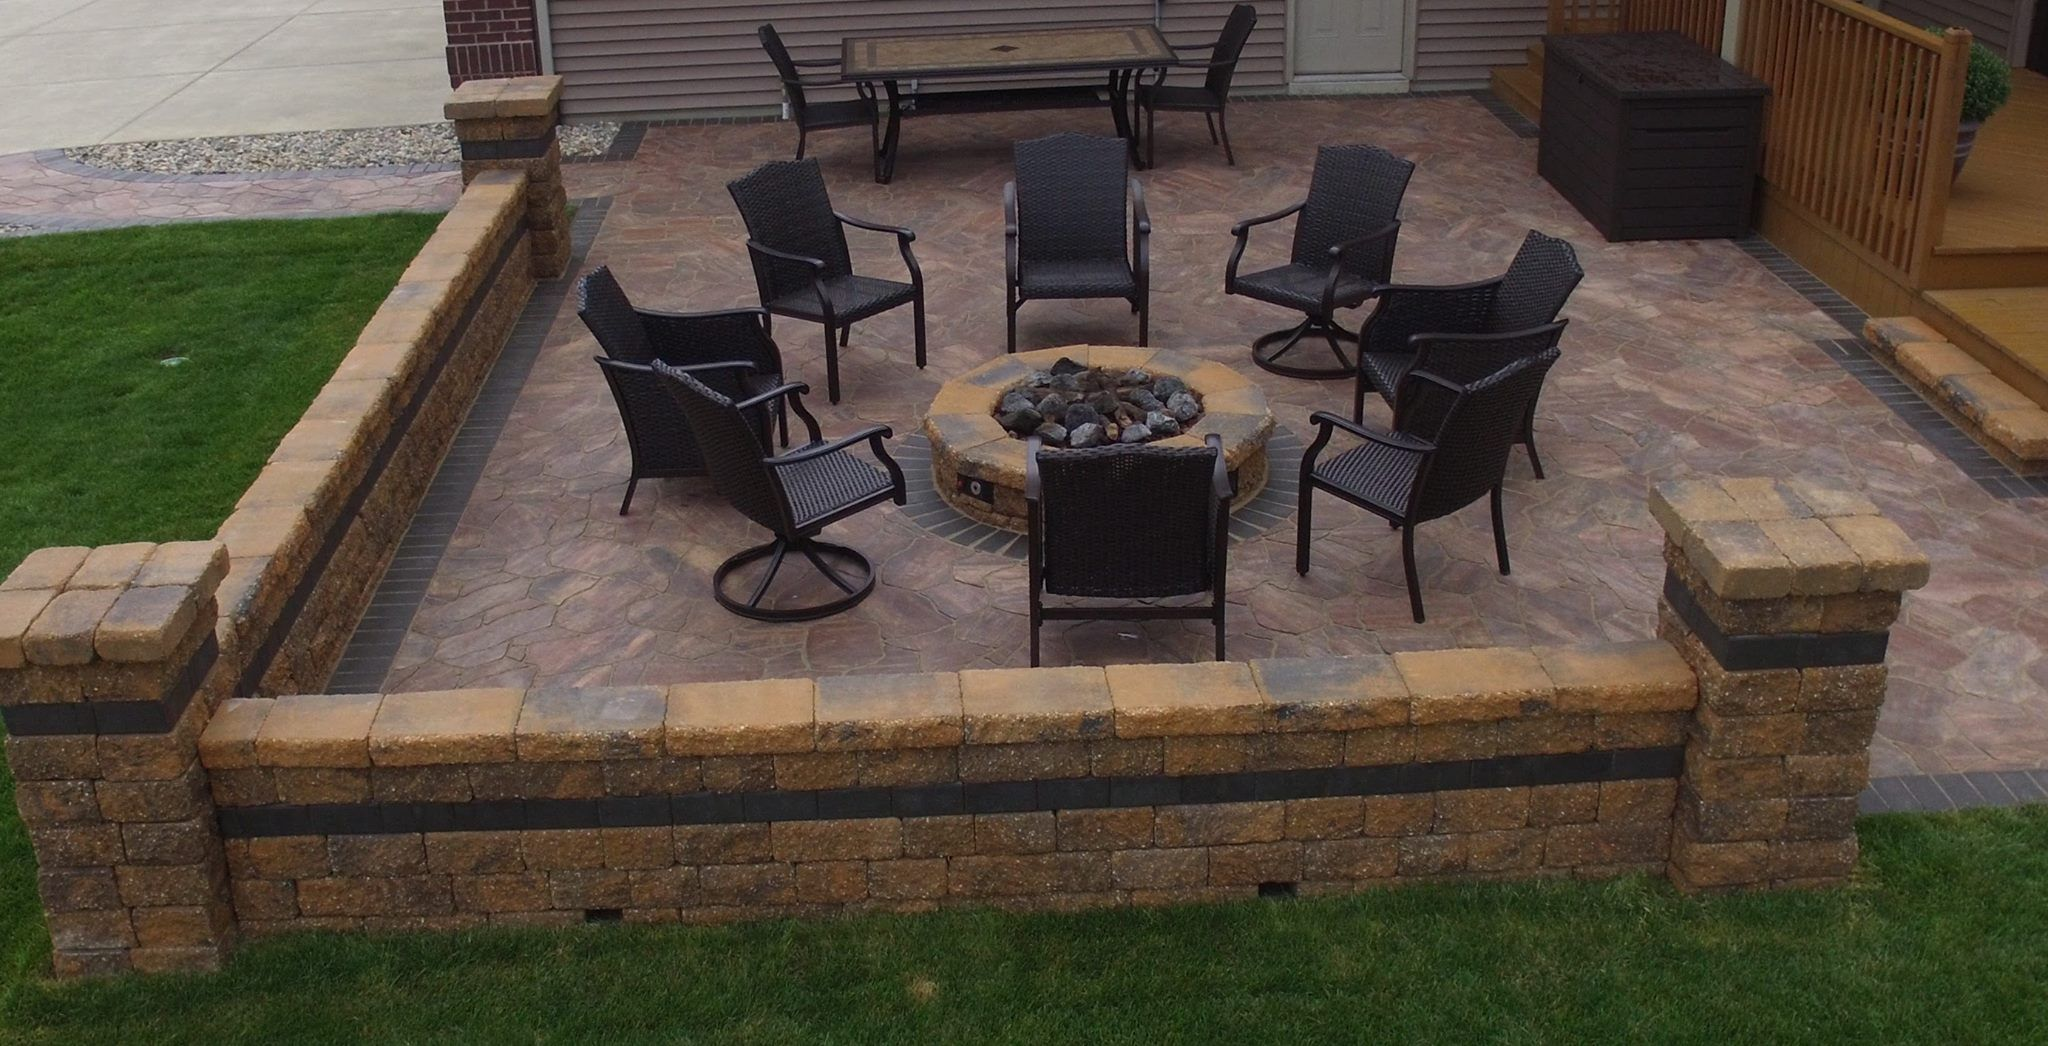 Pin by Kuert Outdoor Living on Patio Hardscapes | Outdoor ... on Kuert Outdoor Living id=38280